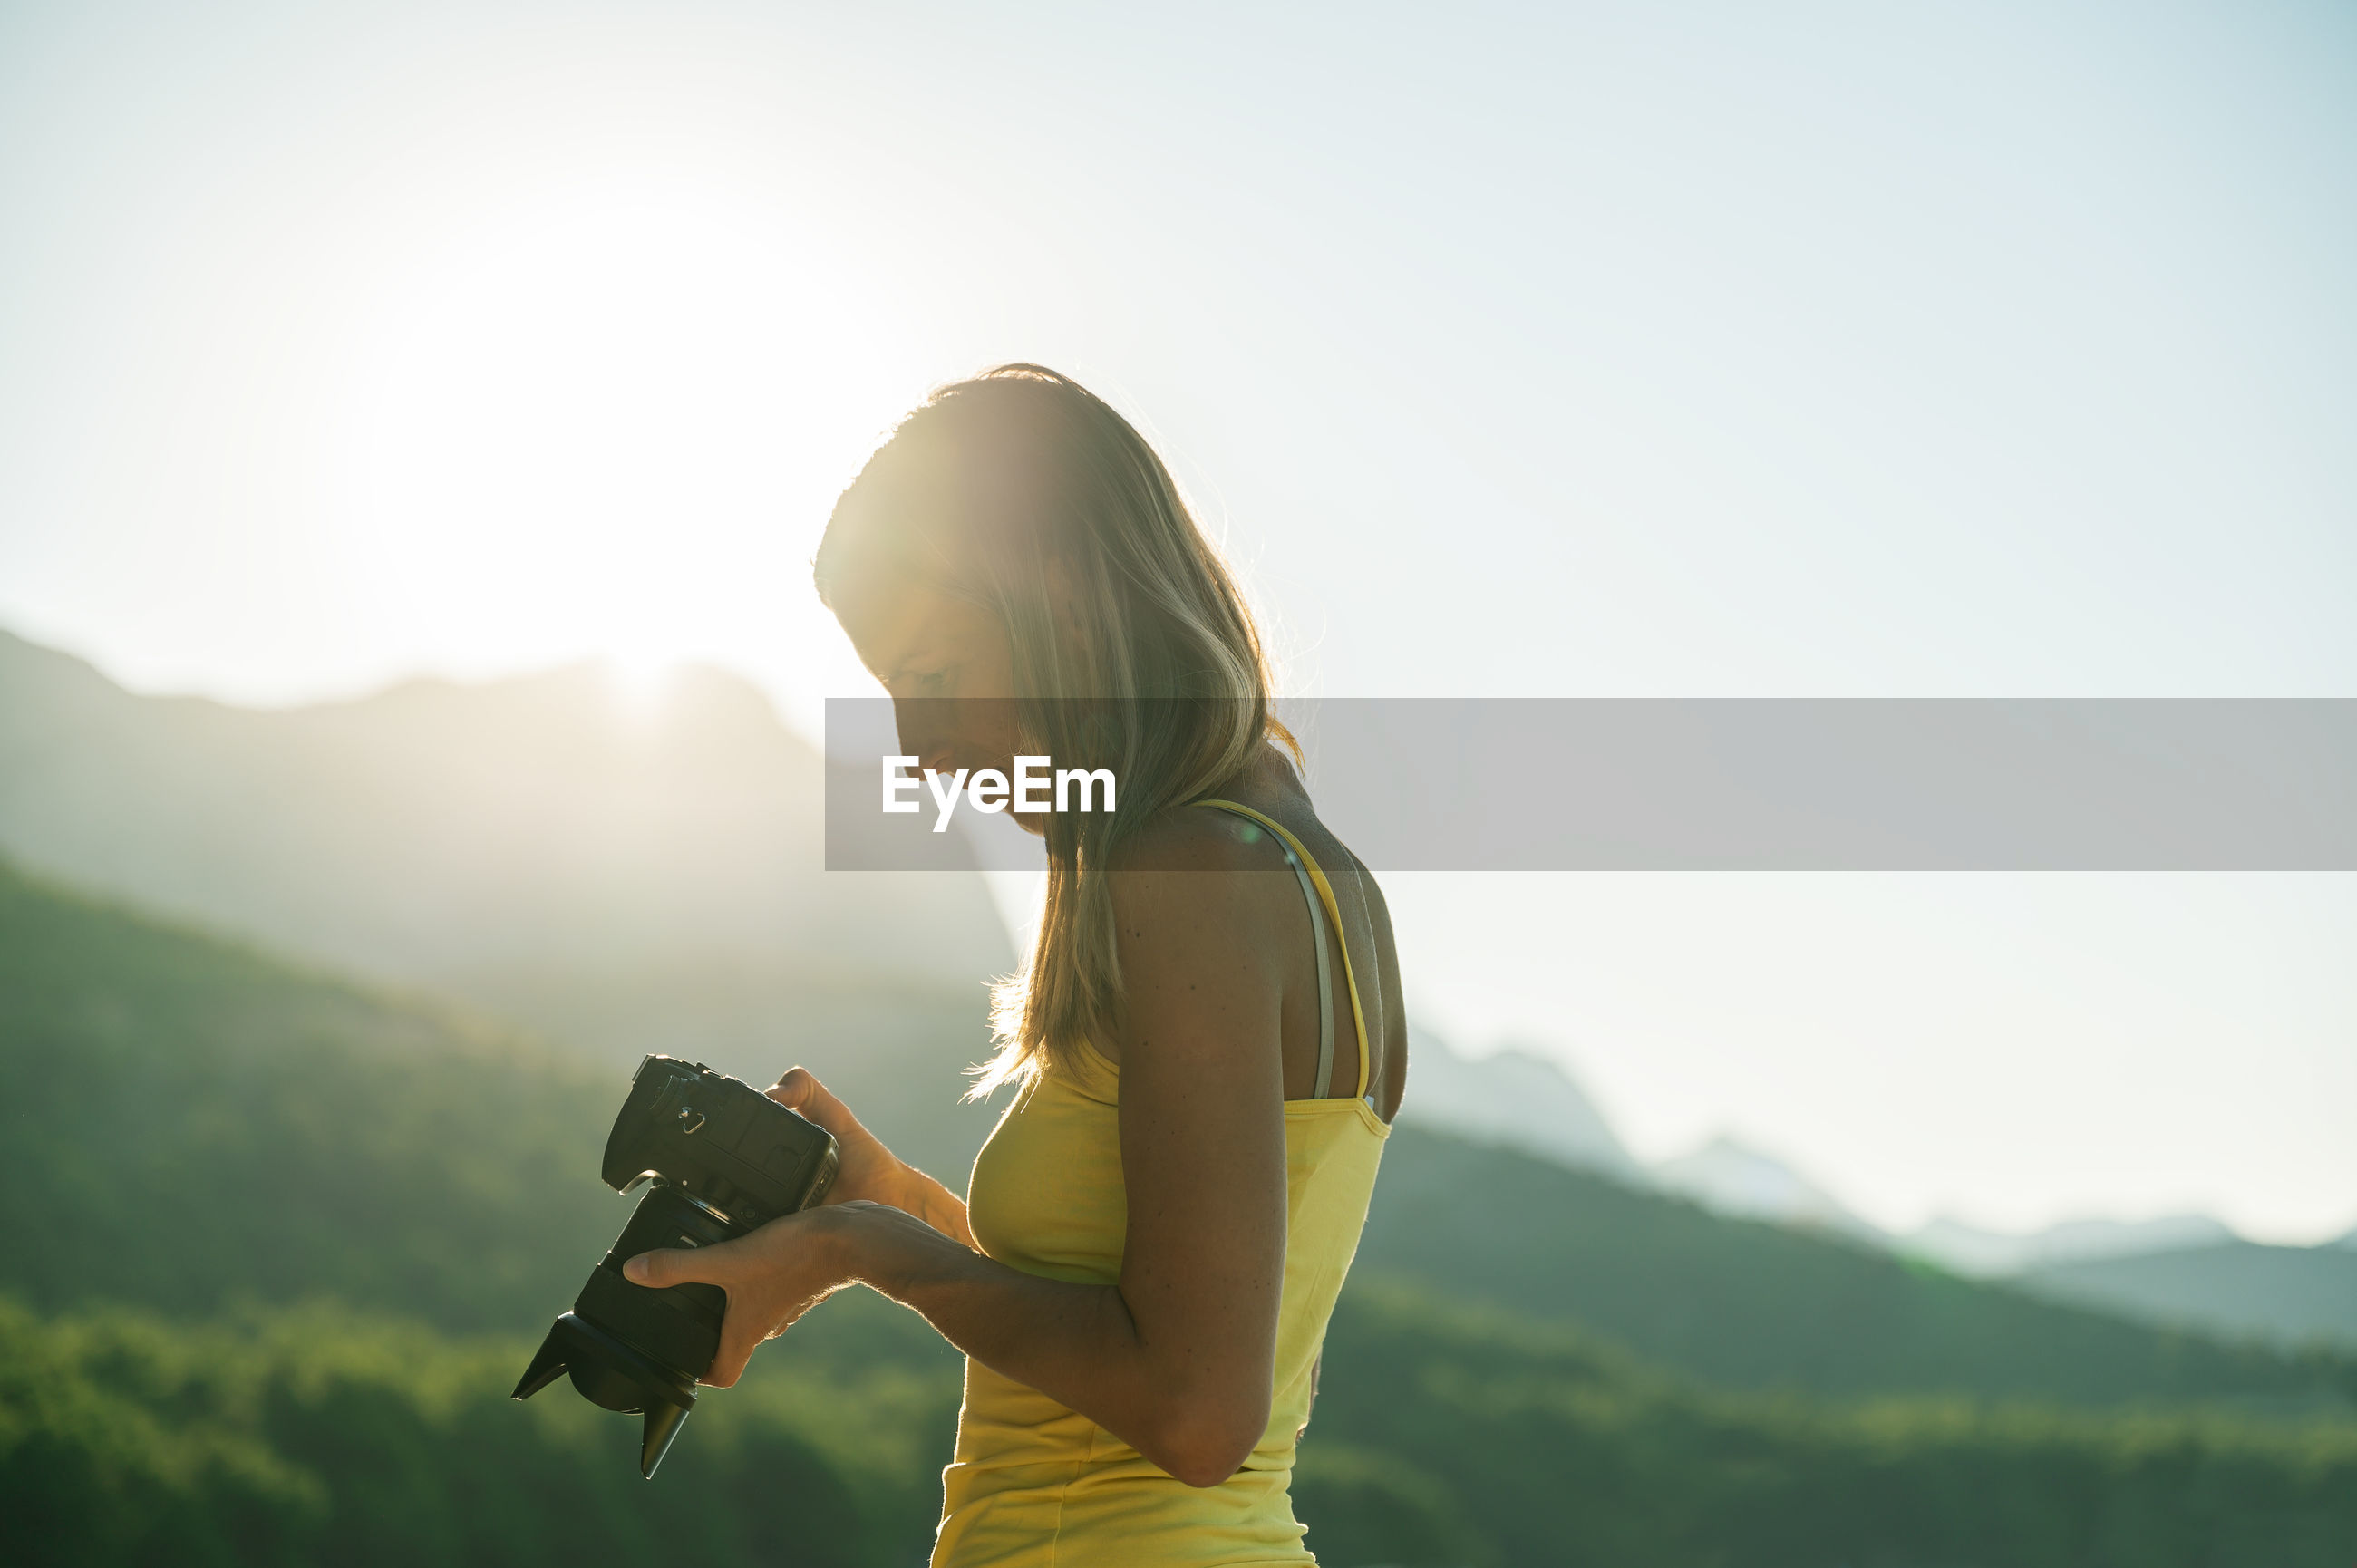 SIDE VIEW OF WOMAN PHOTOGRAPHING CAMERA AGAINST SKY